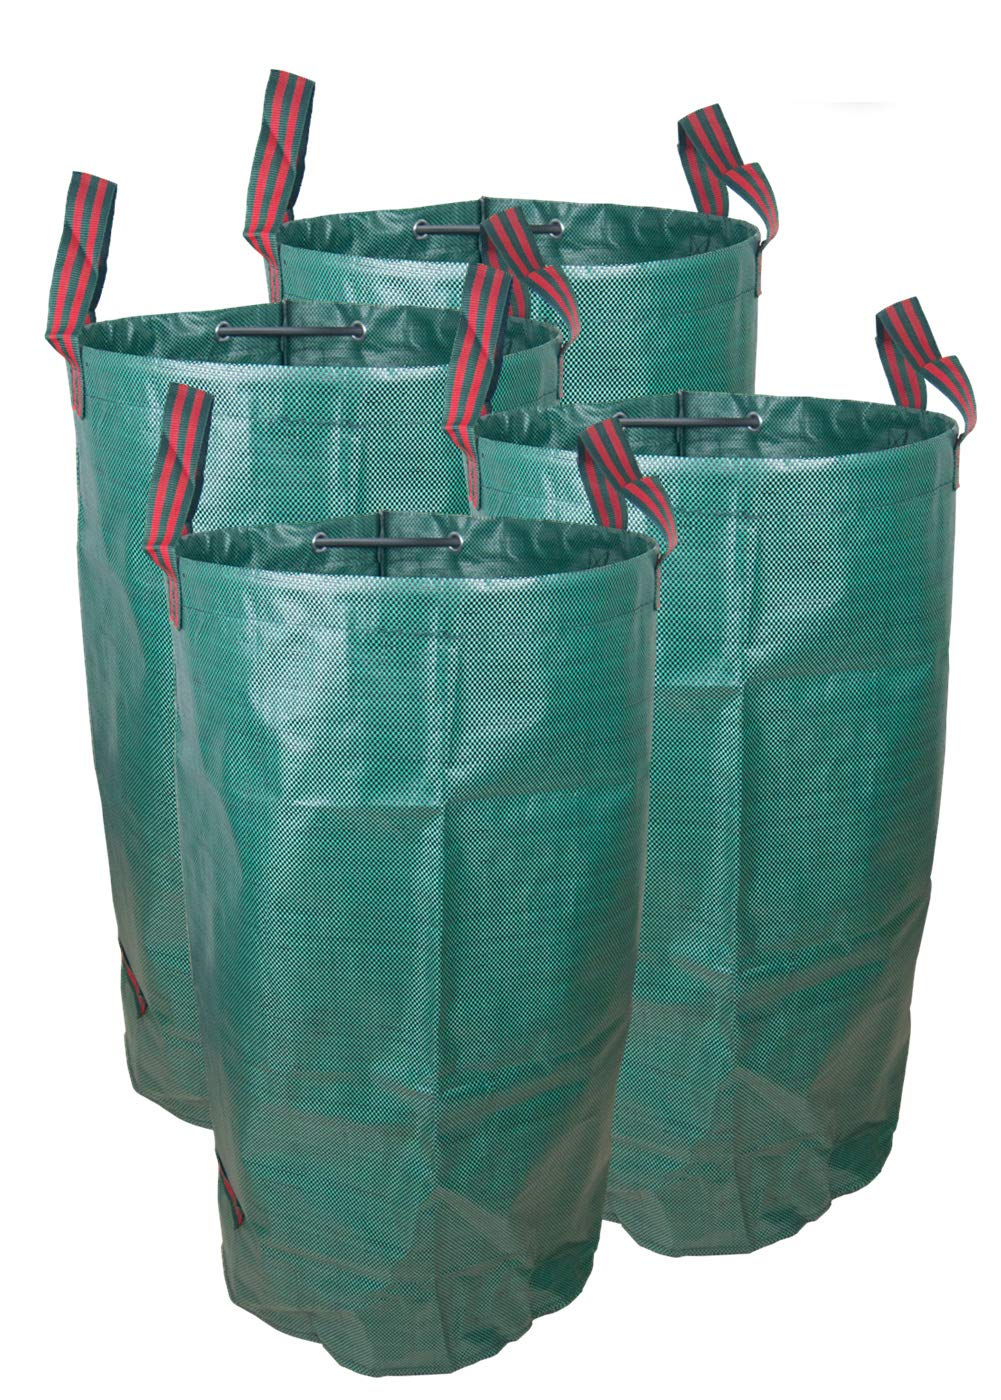 NINAT Garden Waste Bag, Collapsible & Reusable Gardening Lawn Leaf Bags 32 gallons/120 L Heavy Duty 4 Pack